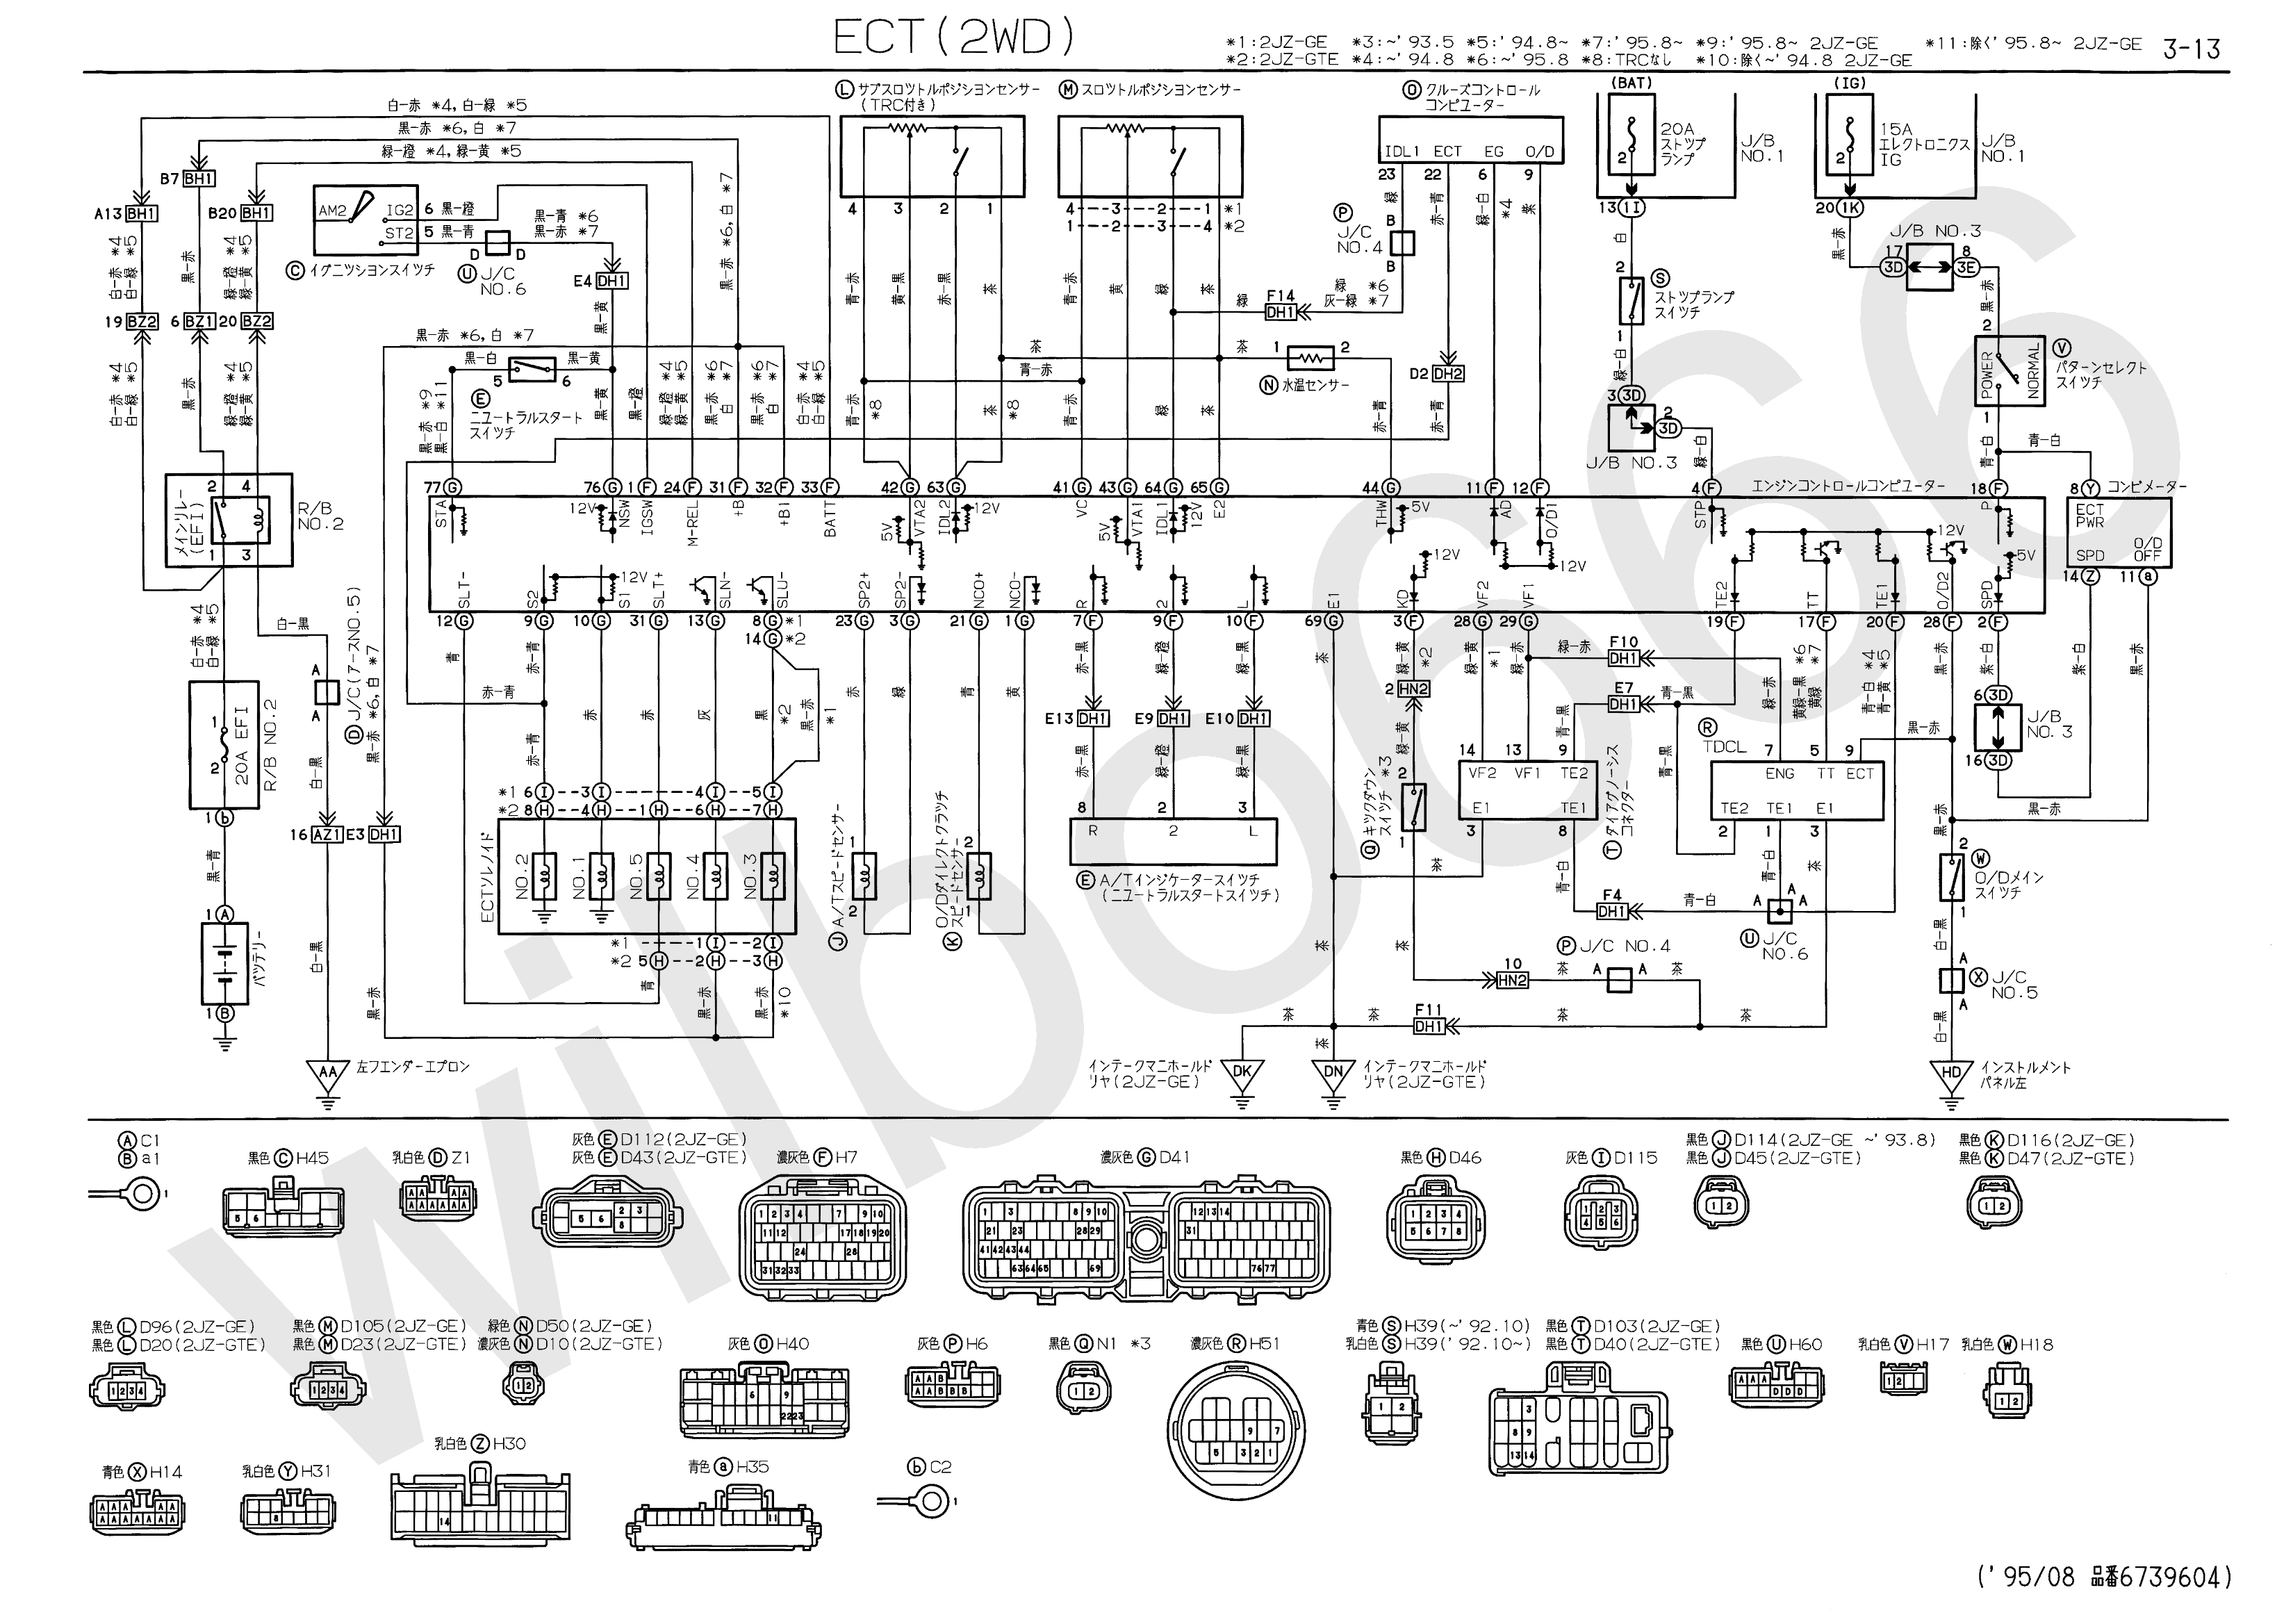 Wilbo666 2jz Gte Jzs147 Aristo Engine Wiring 3 Way Switch Diagnosis Toyota Nsw Sta Diagram